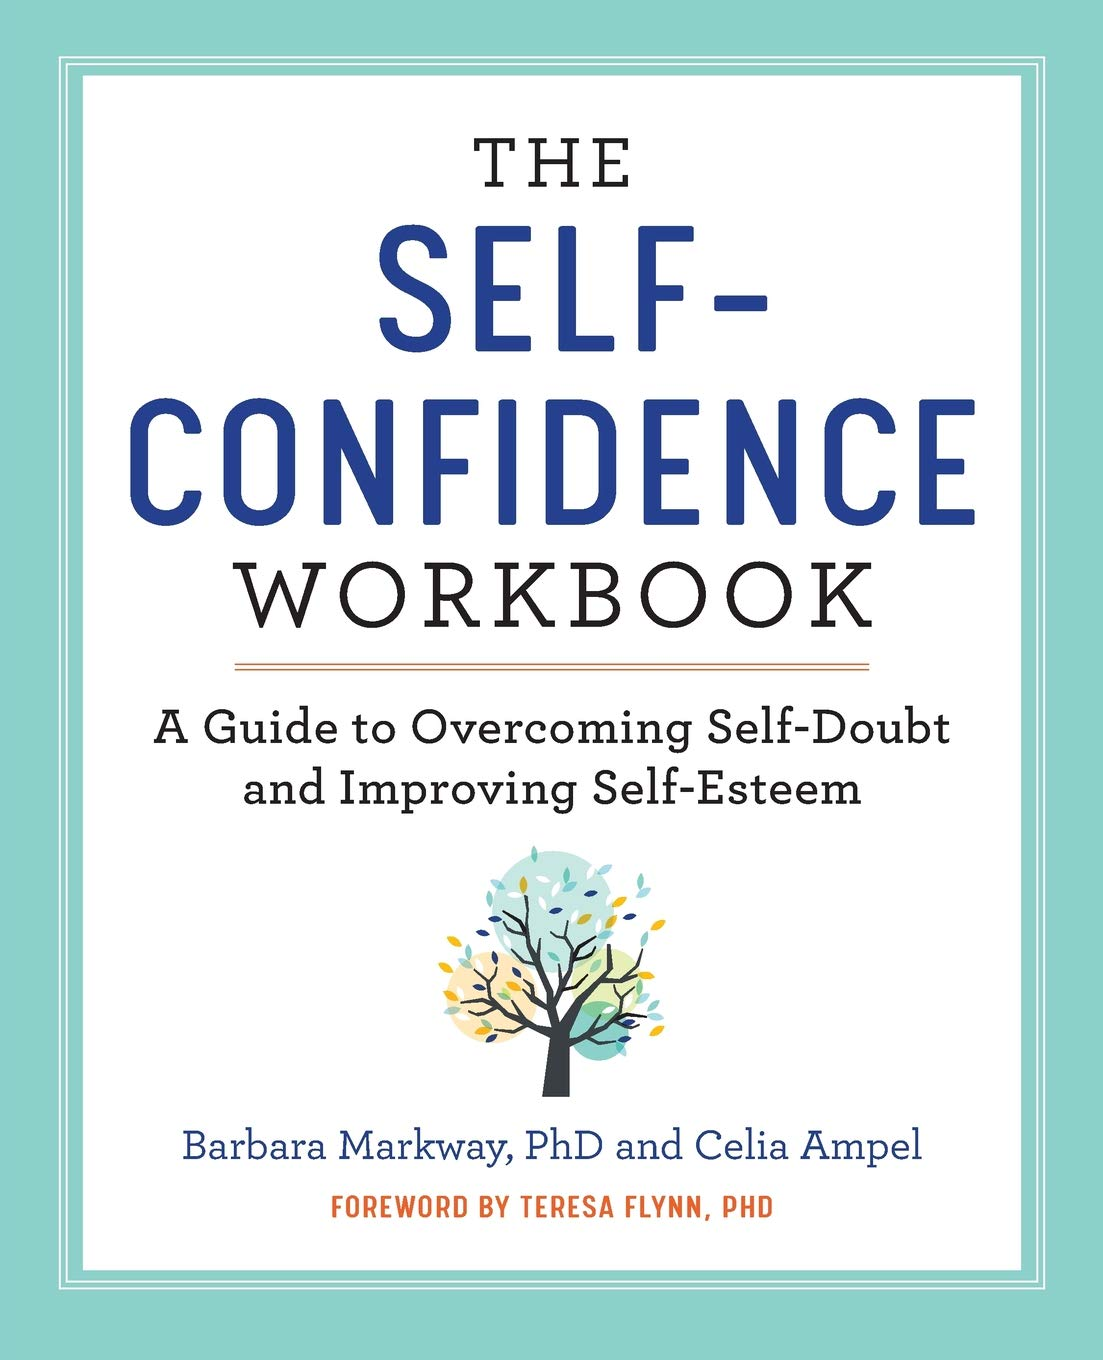 Amazon.com: The Self Confidence Workbook: A Guide to Overcoming Self-Doubt  and Improving Self-Esteem (9781641521482): Barbara Markway PhD, Celia  Ampel, ...